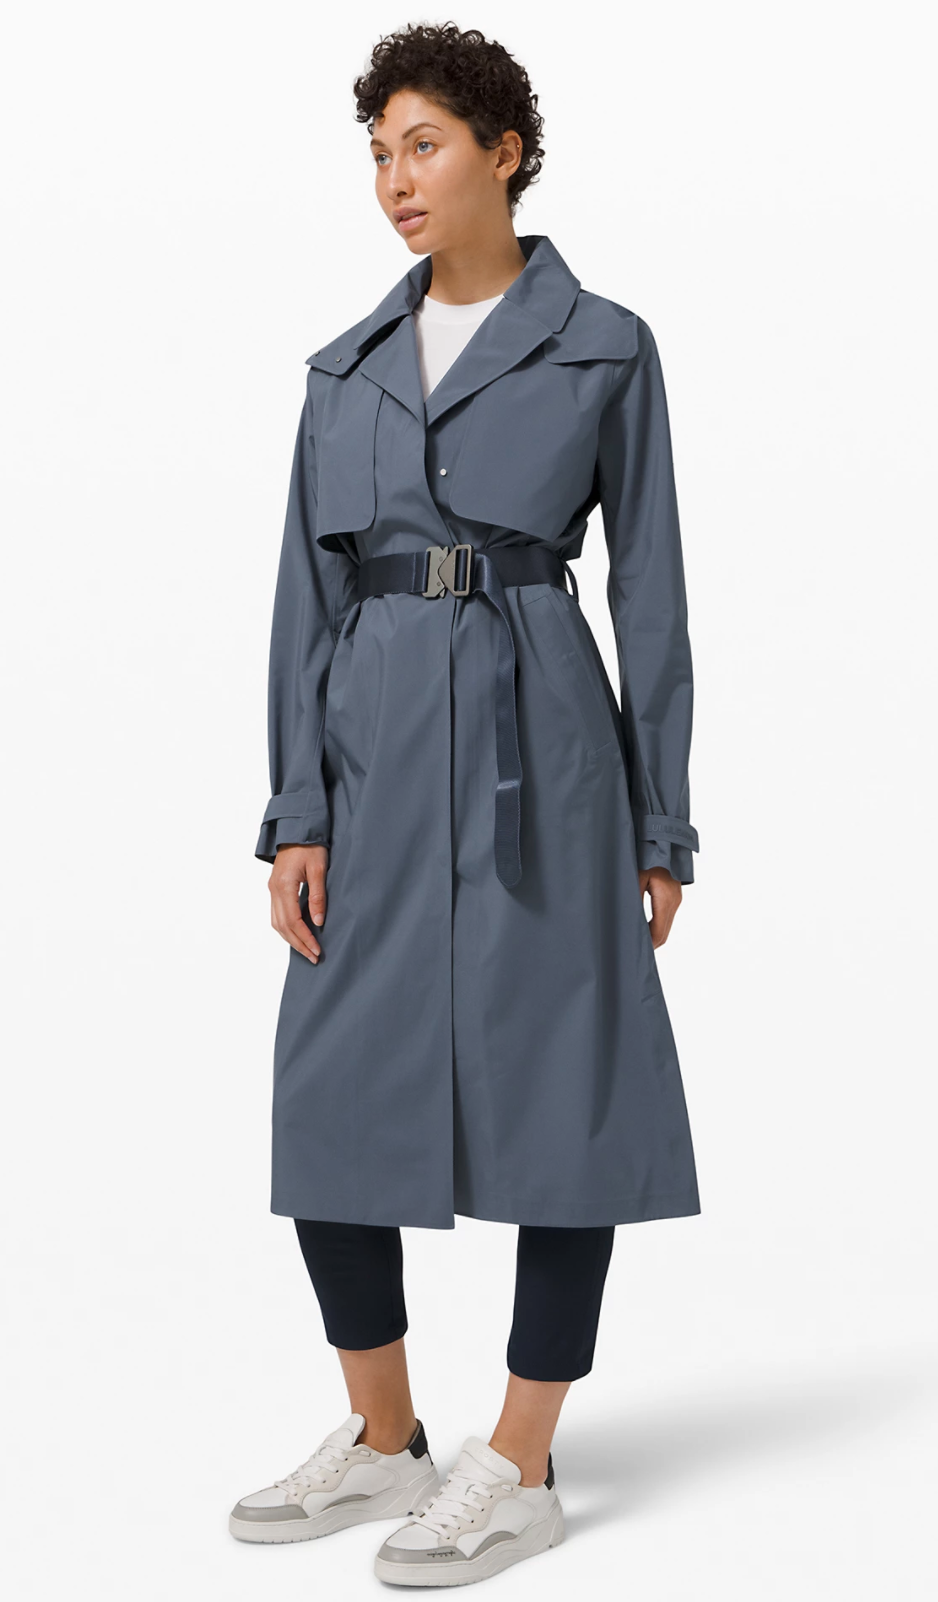 Always There Trench Coat in Iron Blue (Photo via Lululemon Athletica)